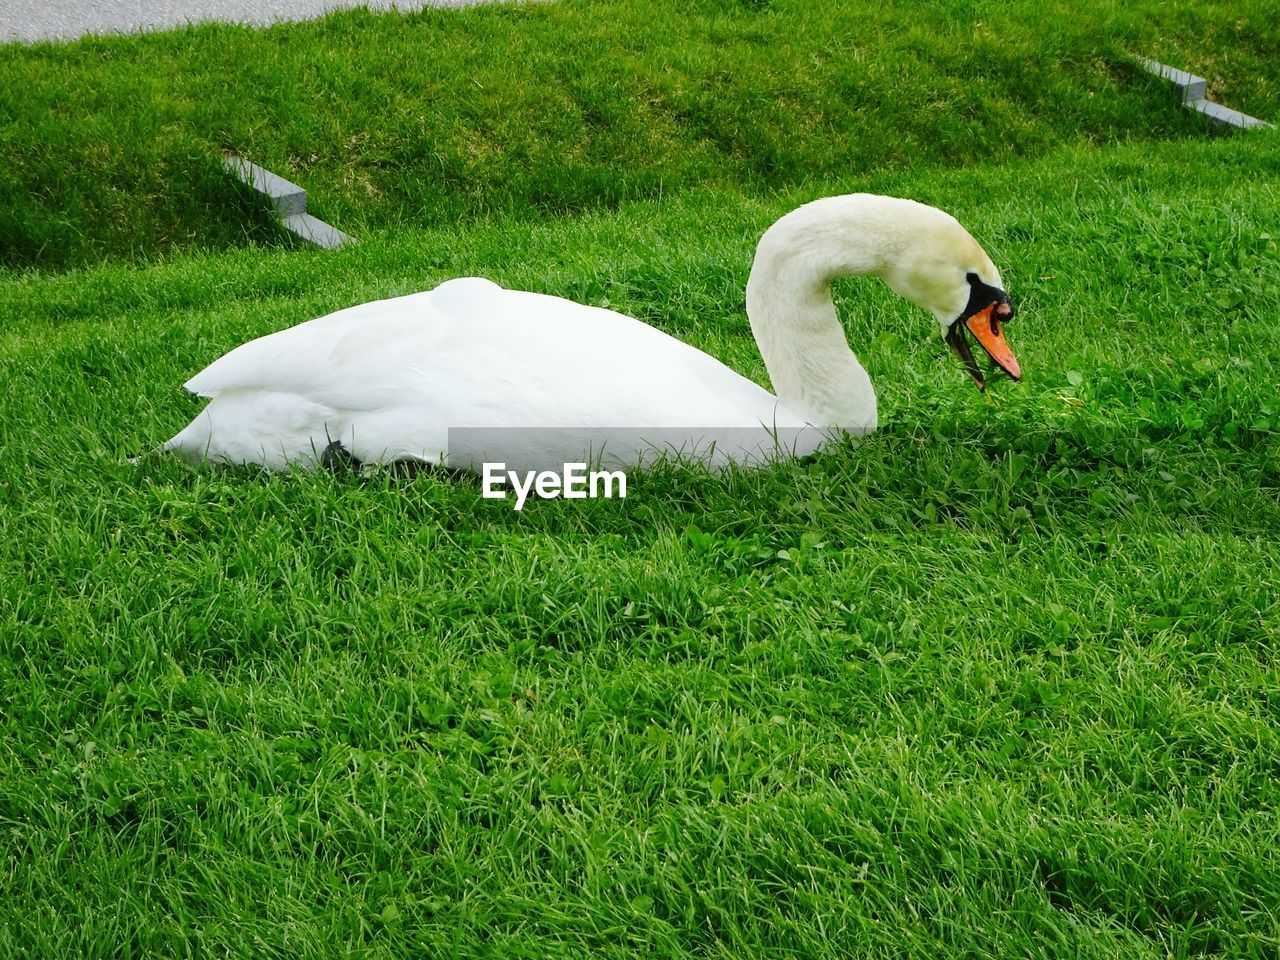 animal themes, animal, vertebrate, grass, bird, green color, one animal, plant, white color, nature, swan, animals in the wild, field, land, animal wildlife, day, no people, growth, water bird, side view, cygnet